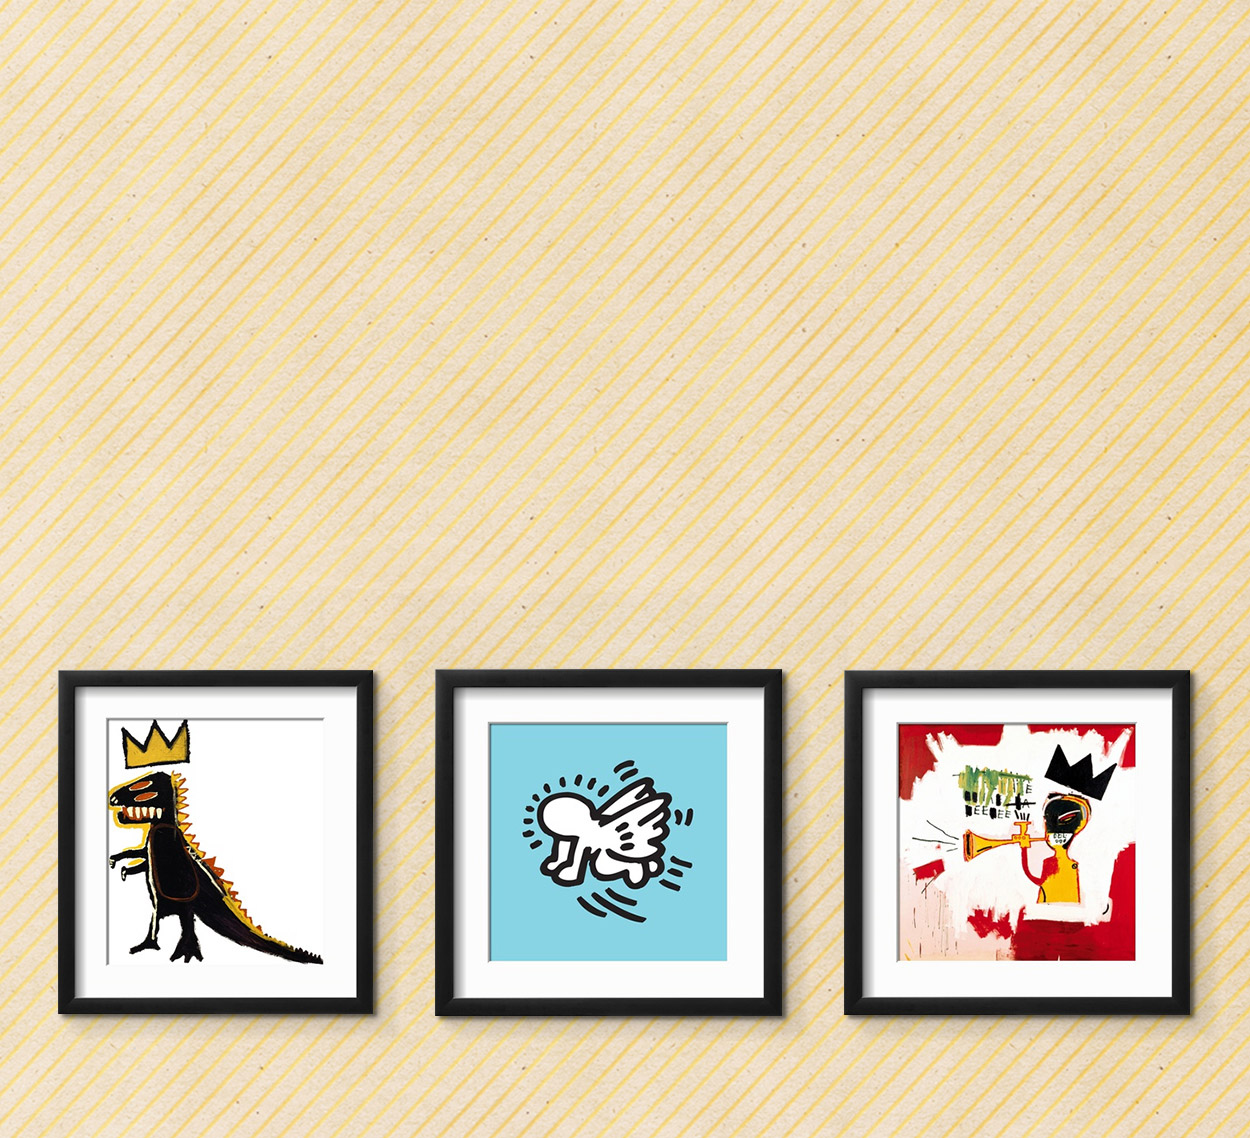 $49.99 + Free Shipping. For a limited time. Gift of the week: Prints by Basquiat and Haring. Shop Now